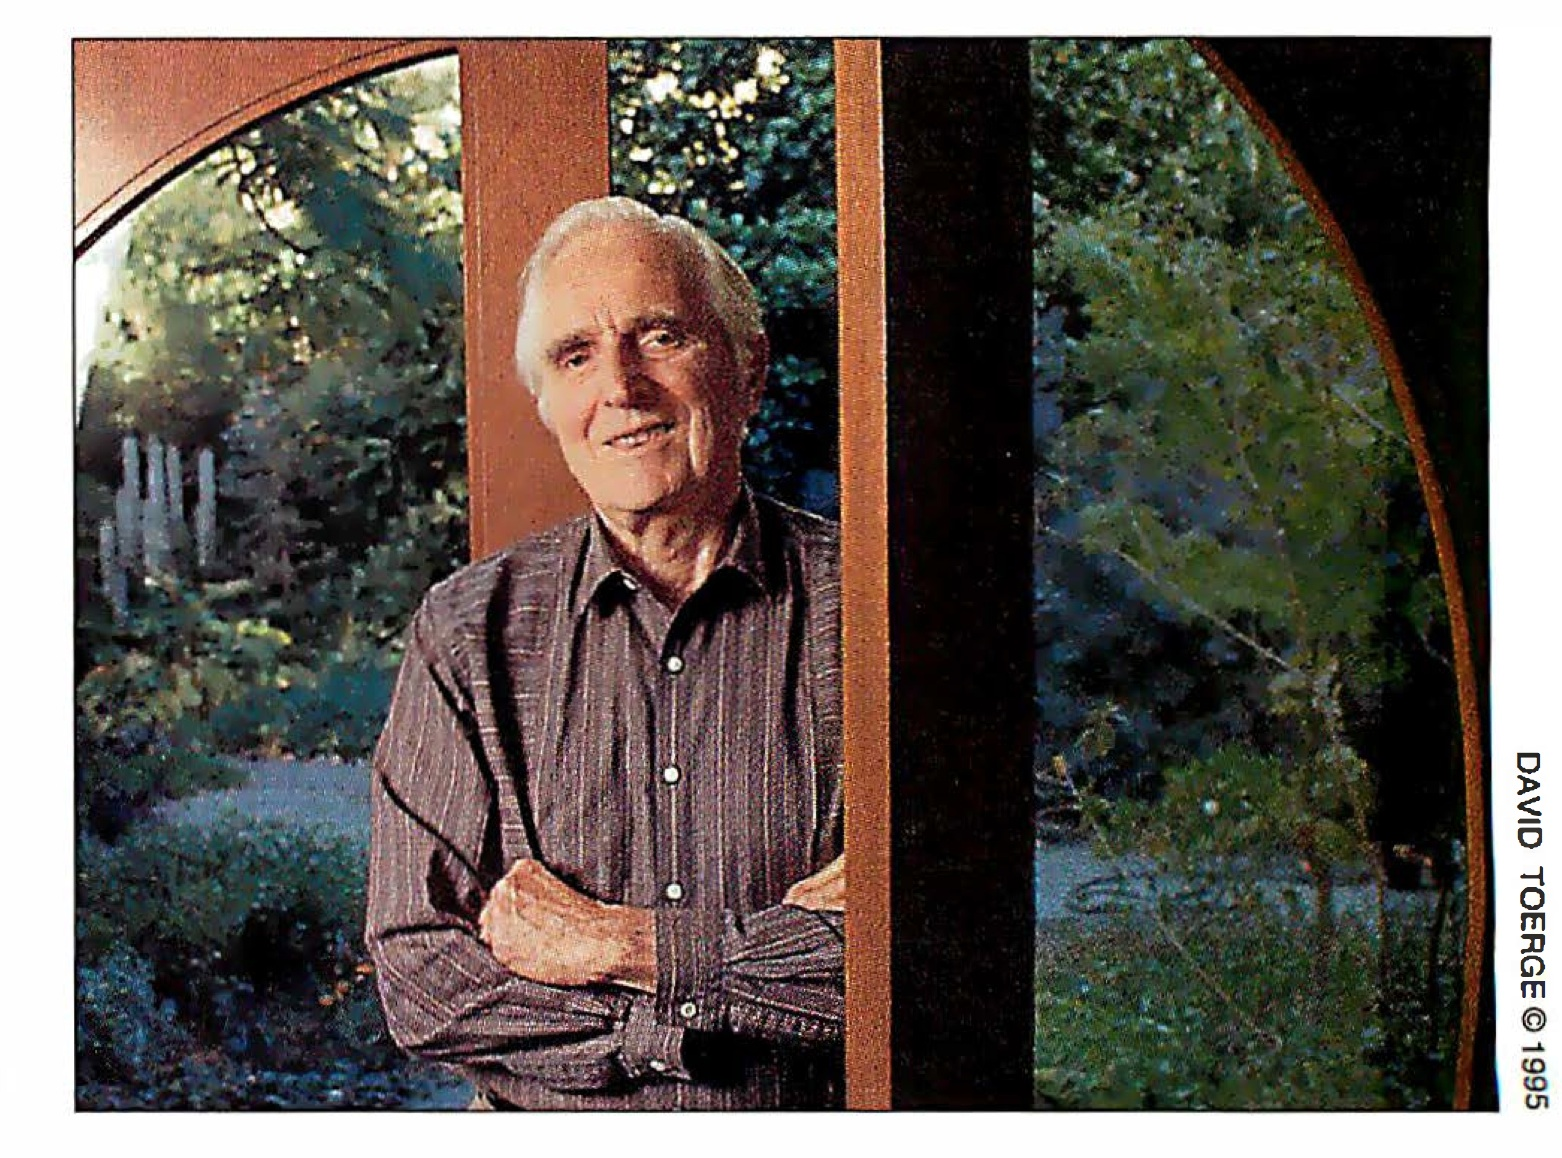 Photo of Doug in his home by David Toerge 1995